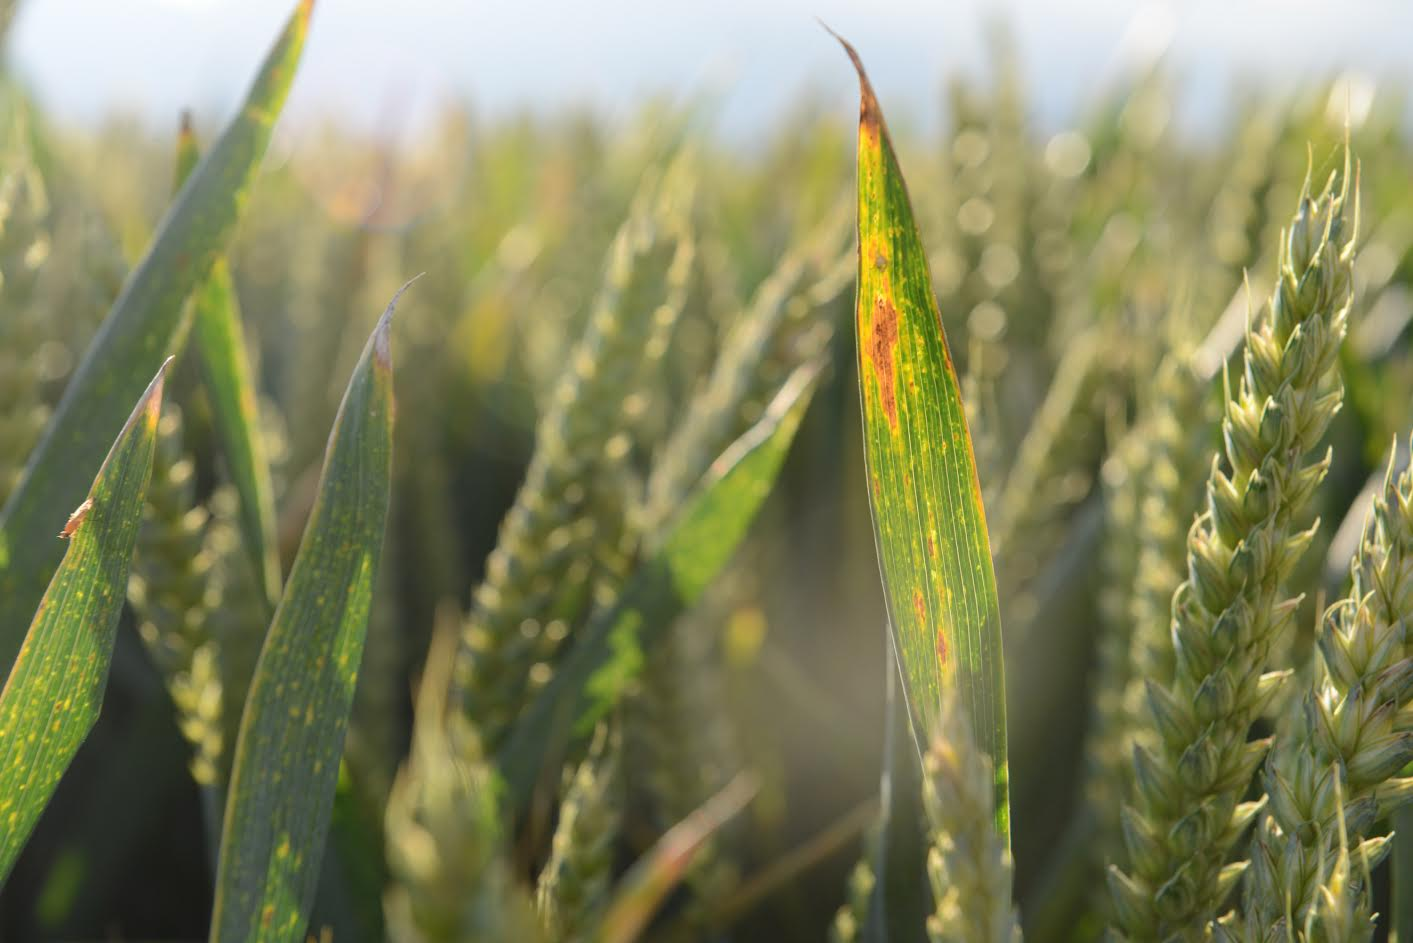 Barley growers warned of 'barley yellow dwarf virus' risk this season